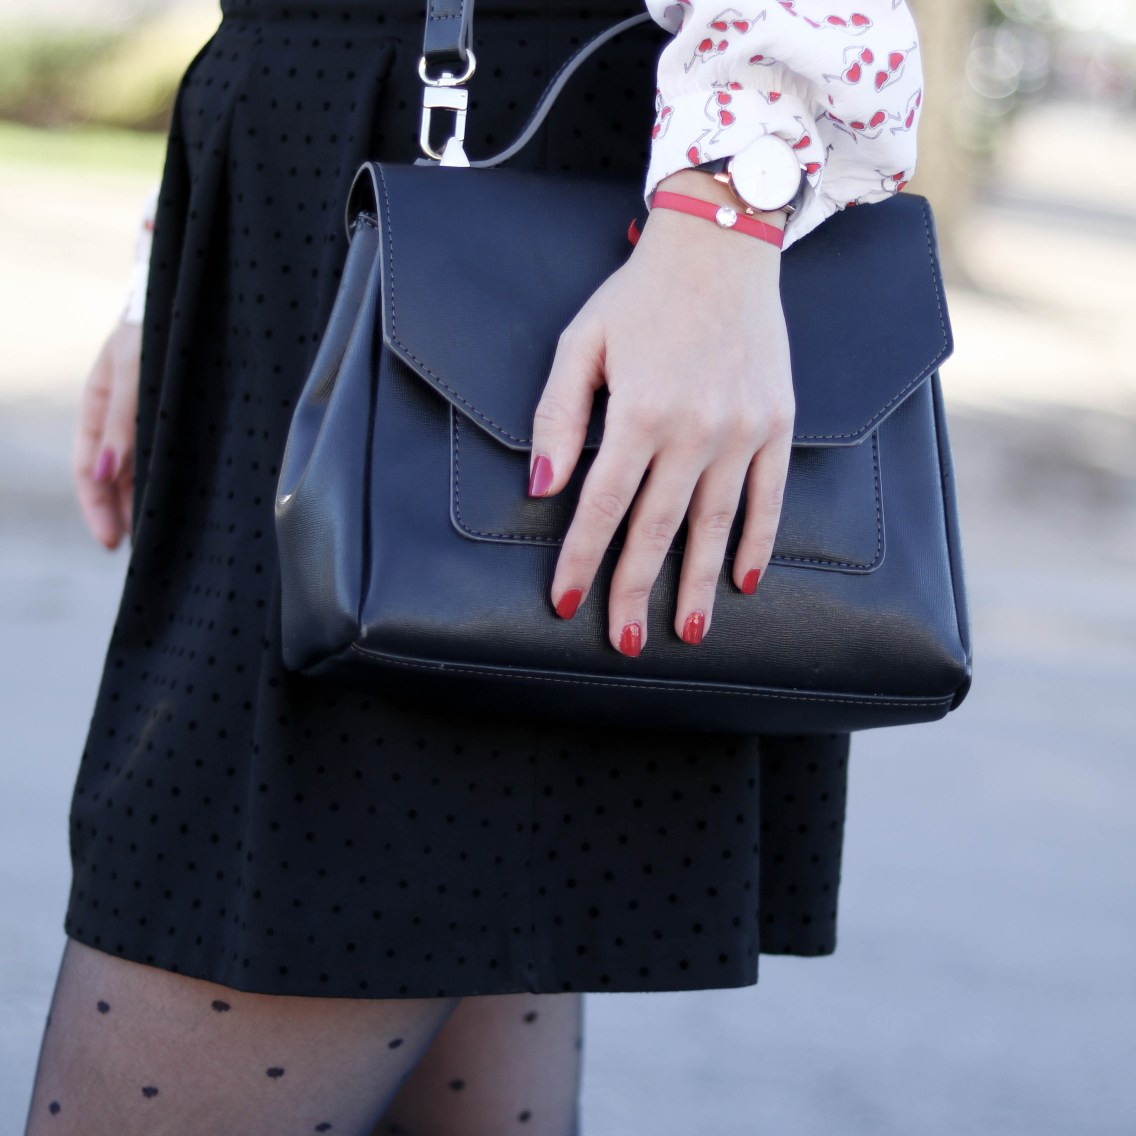 Trench rouge tendance 28 mademoiselle-e